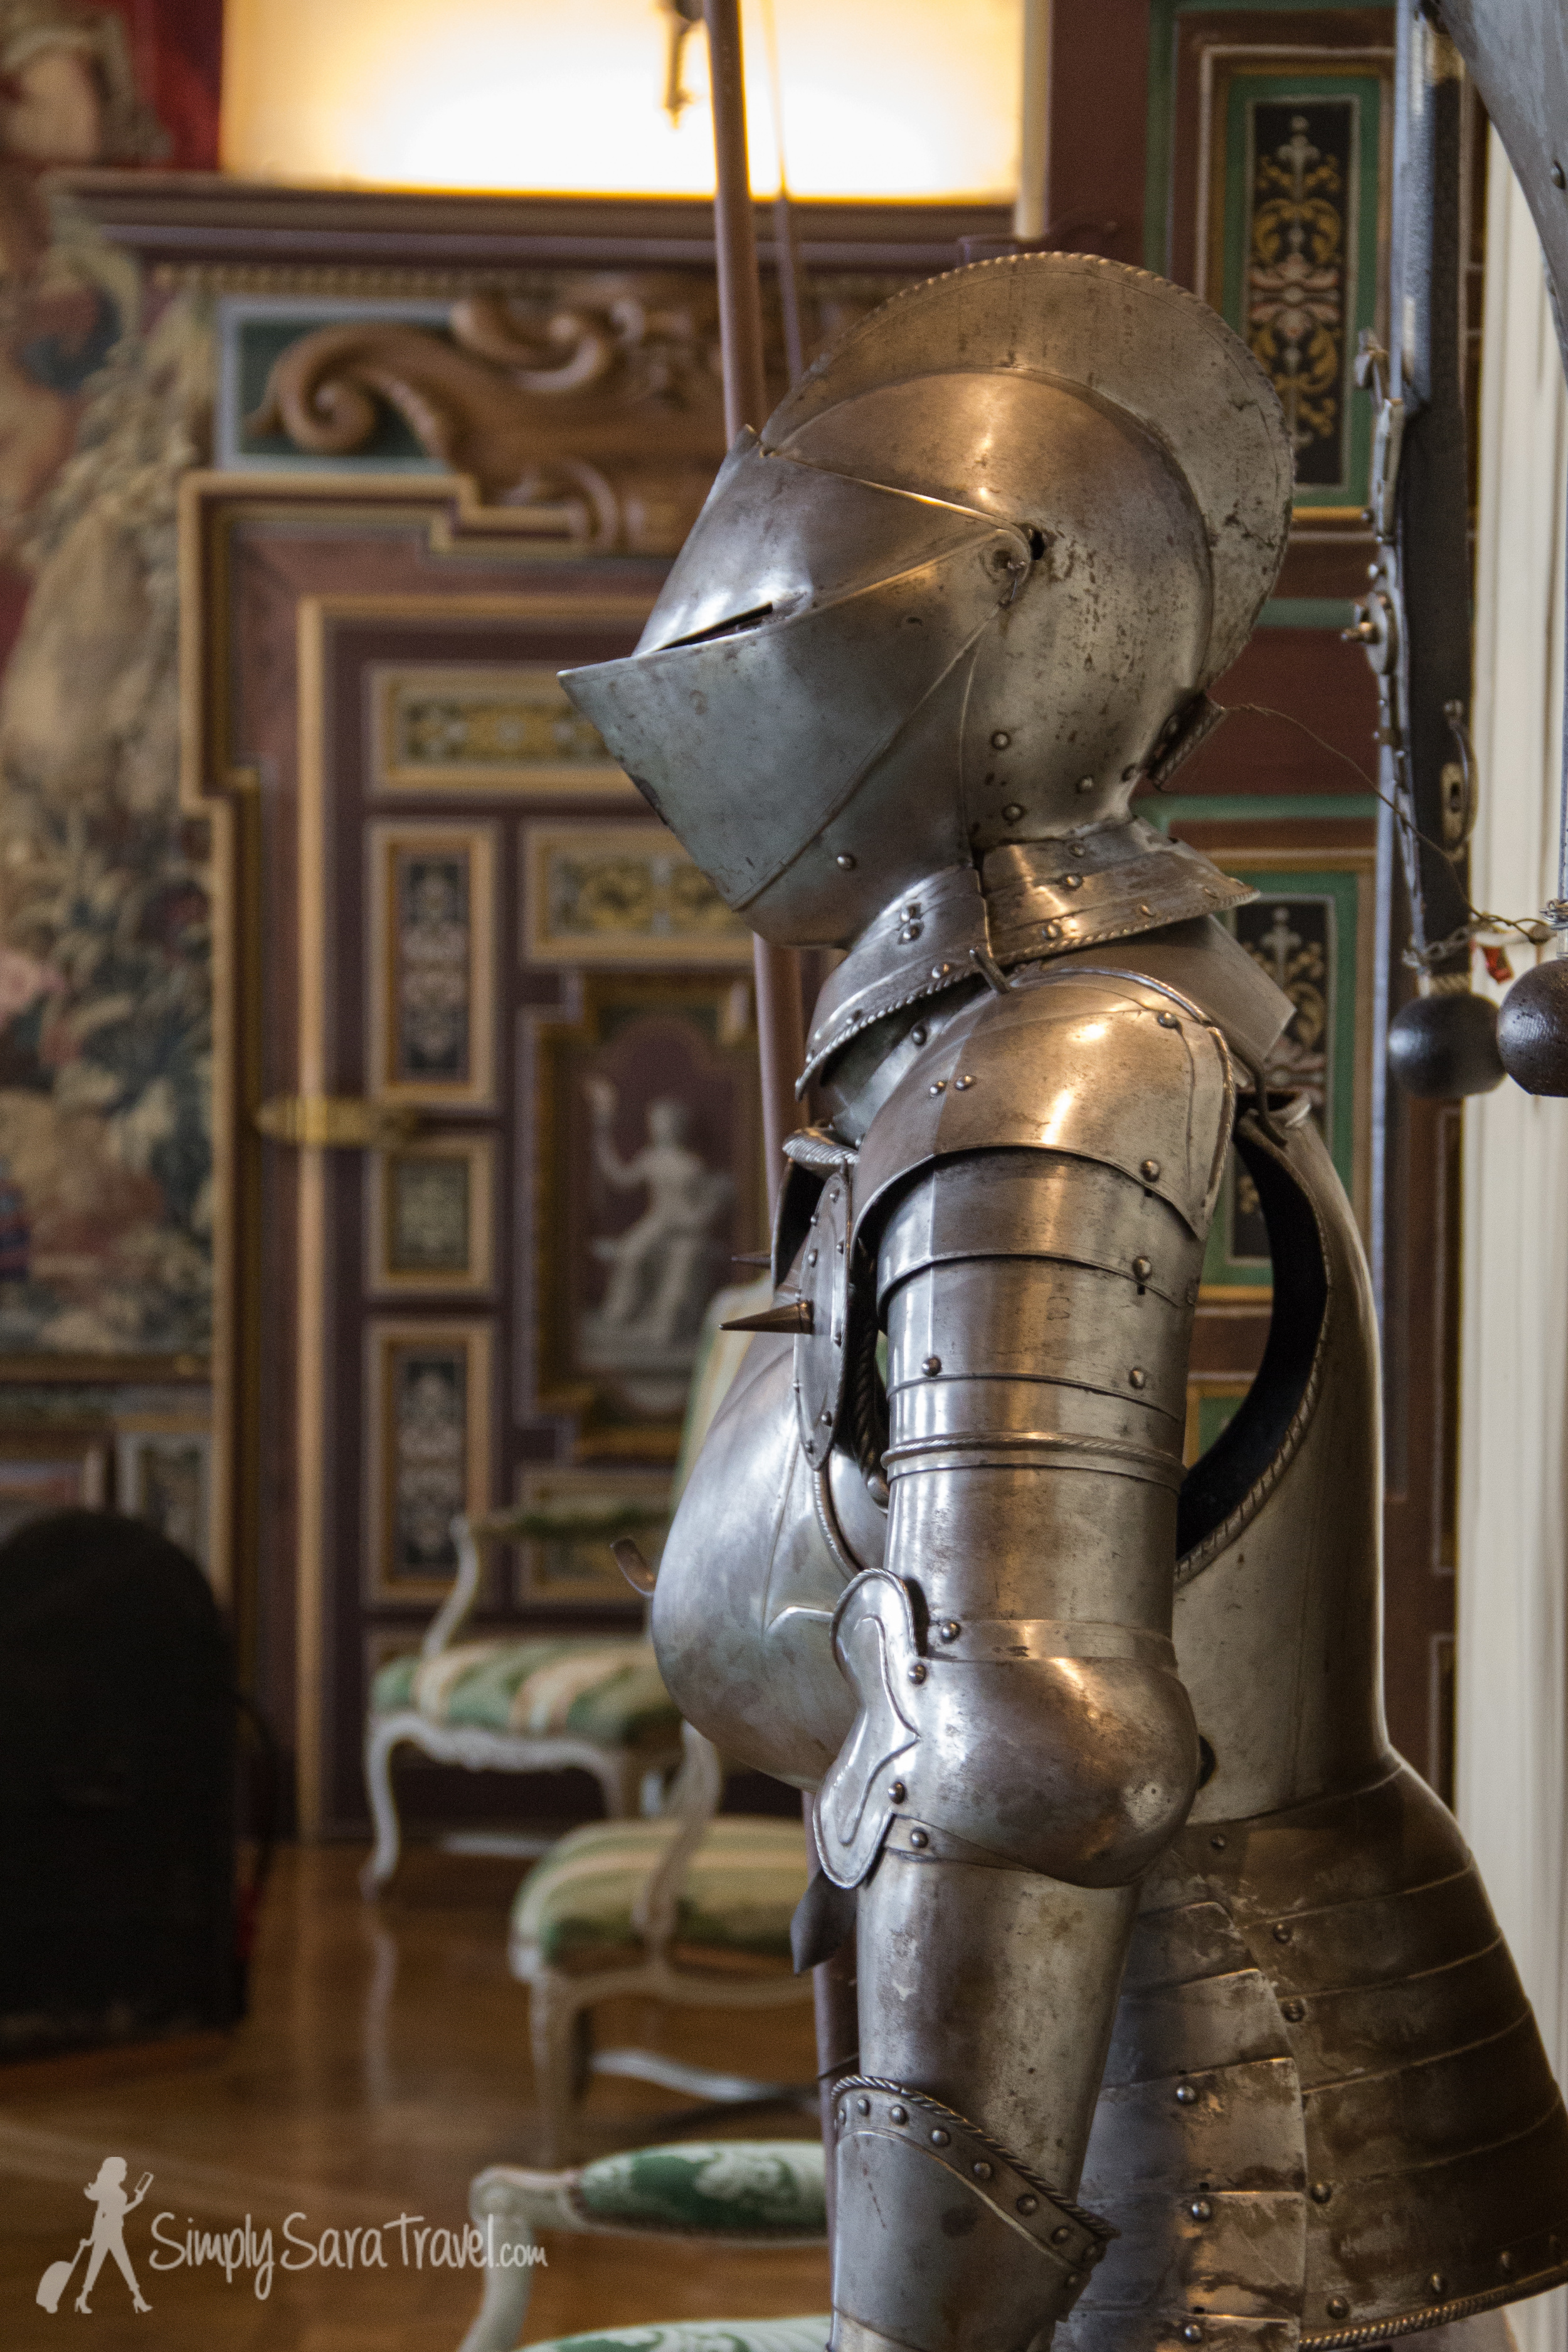 In the arms room a collection of weapons and armor were displayed from the 15th, 16th, and 17th centuries.